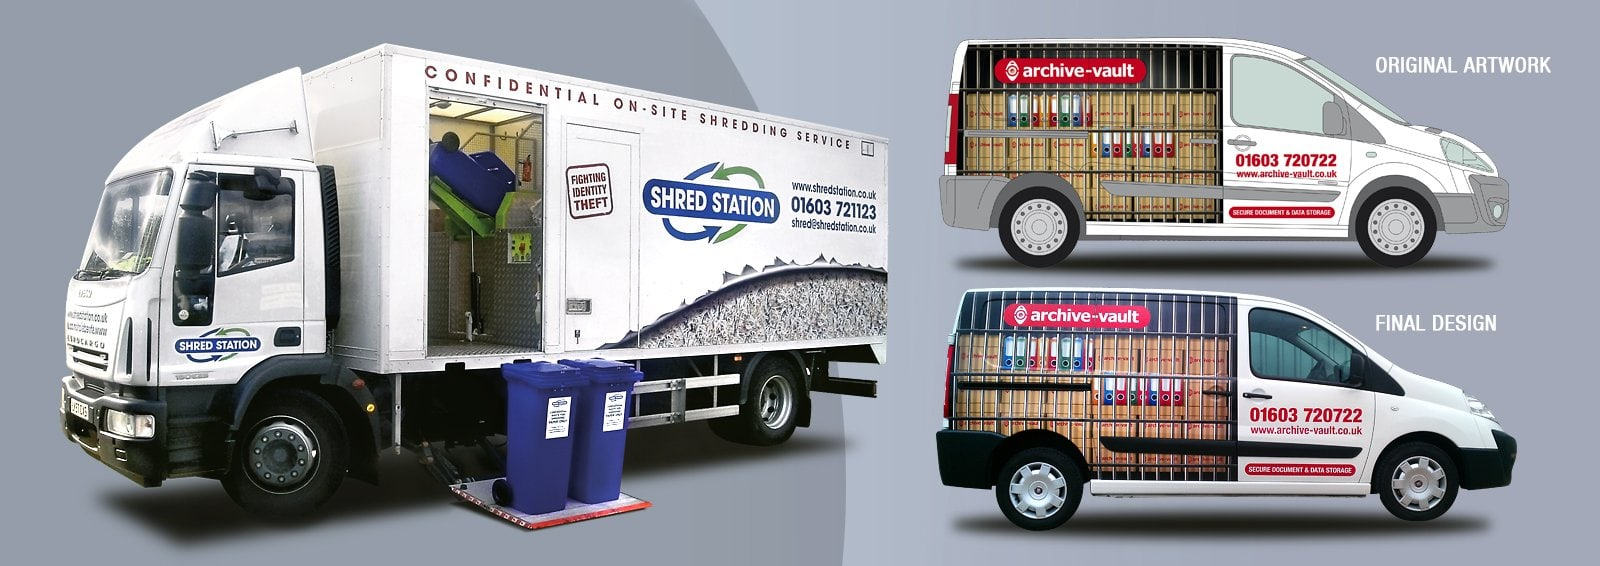 Custom Vehicle Graphics by Cameron Creative, Norwich